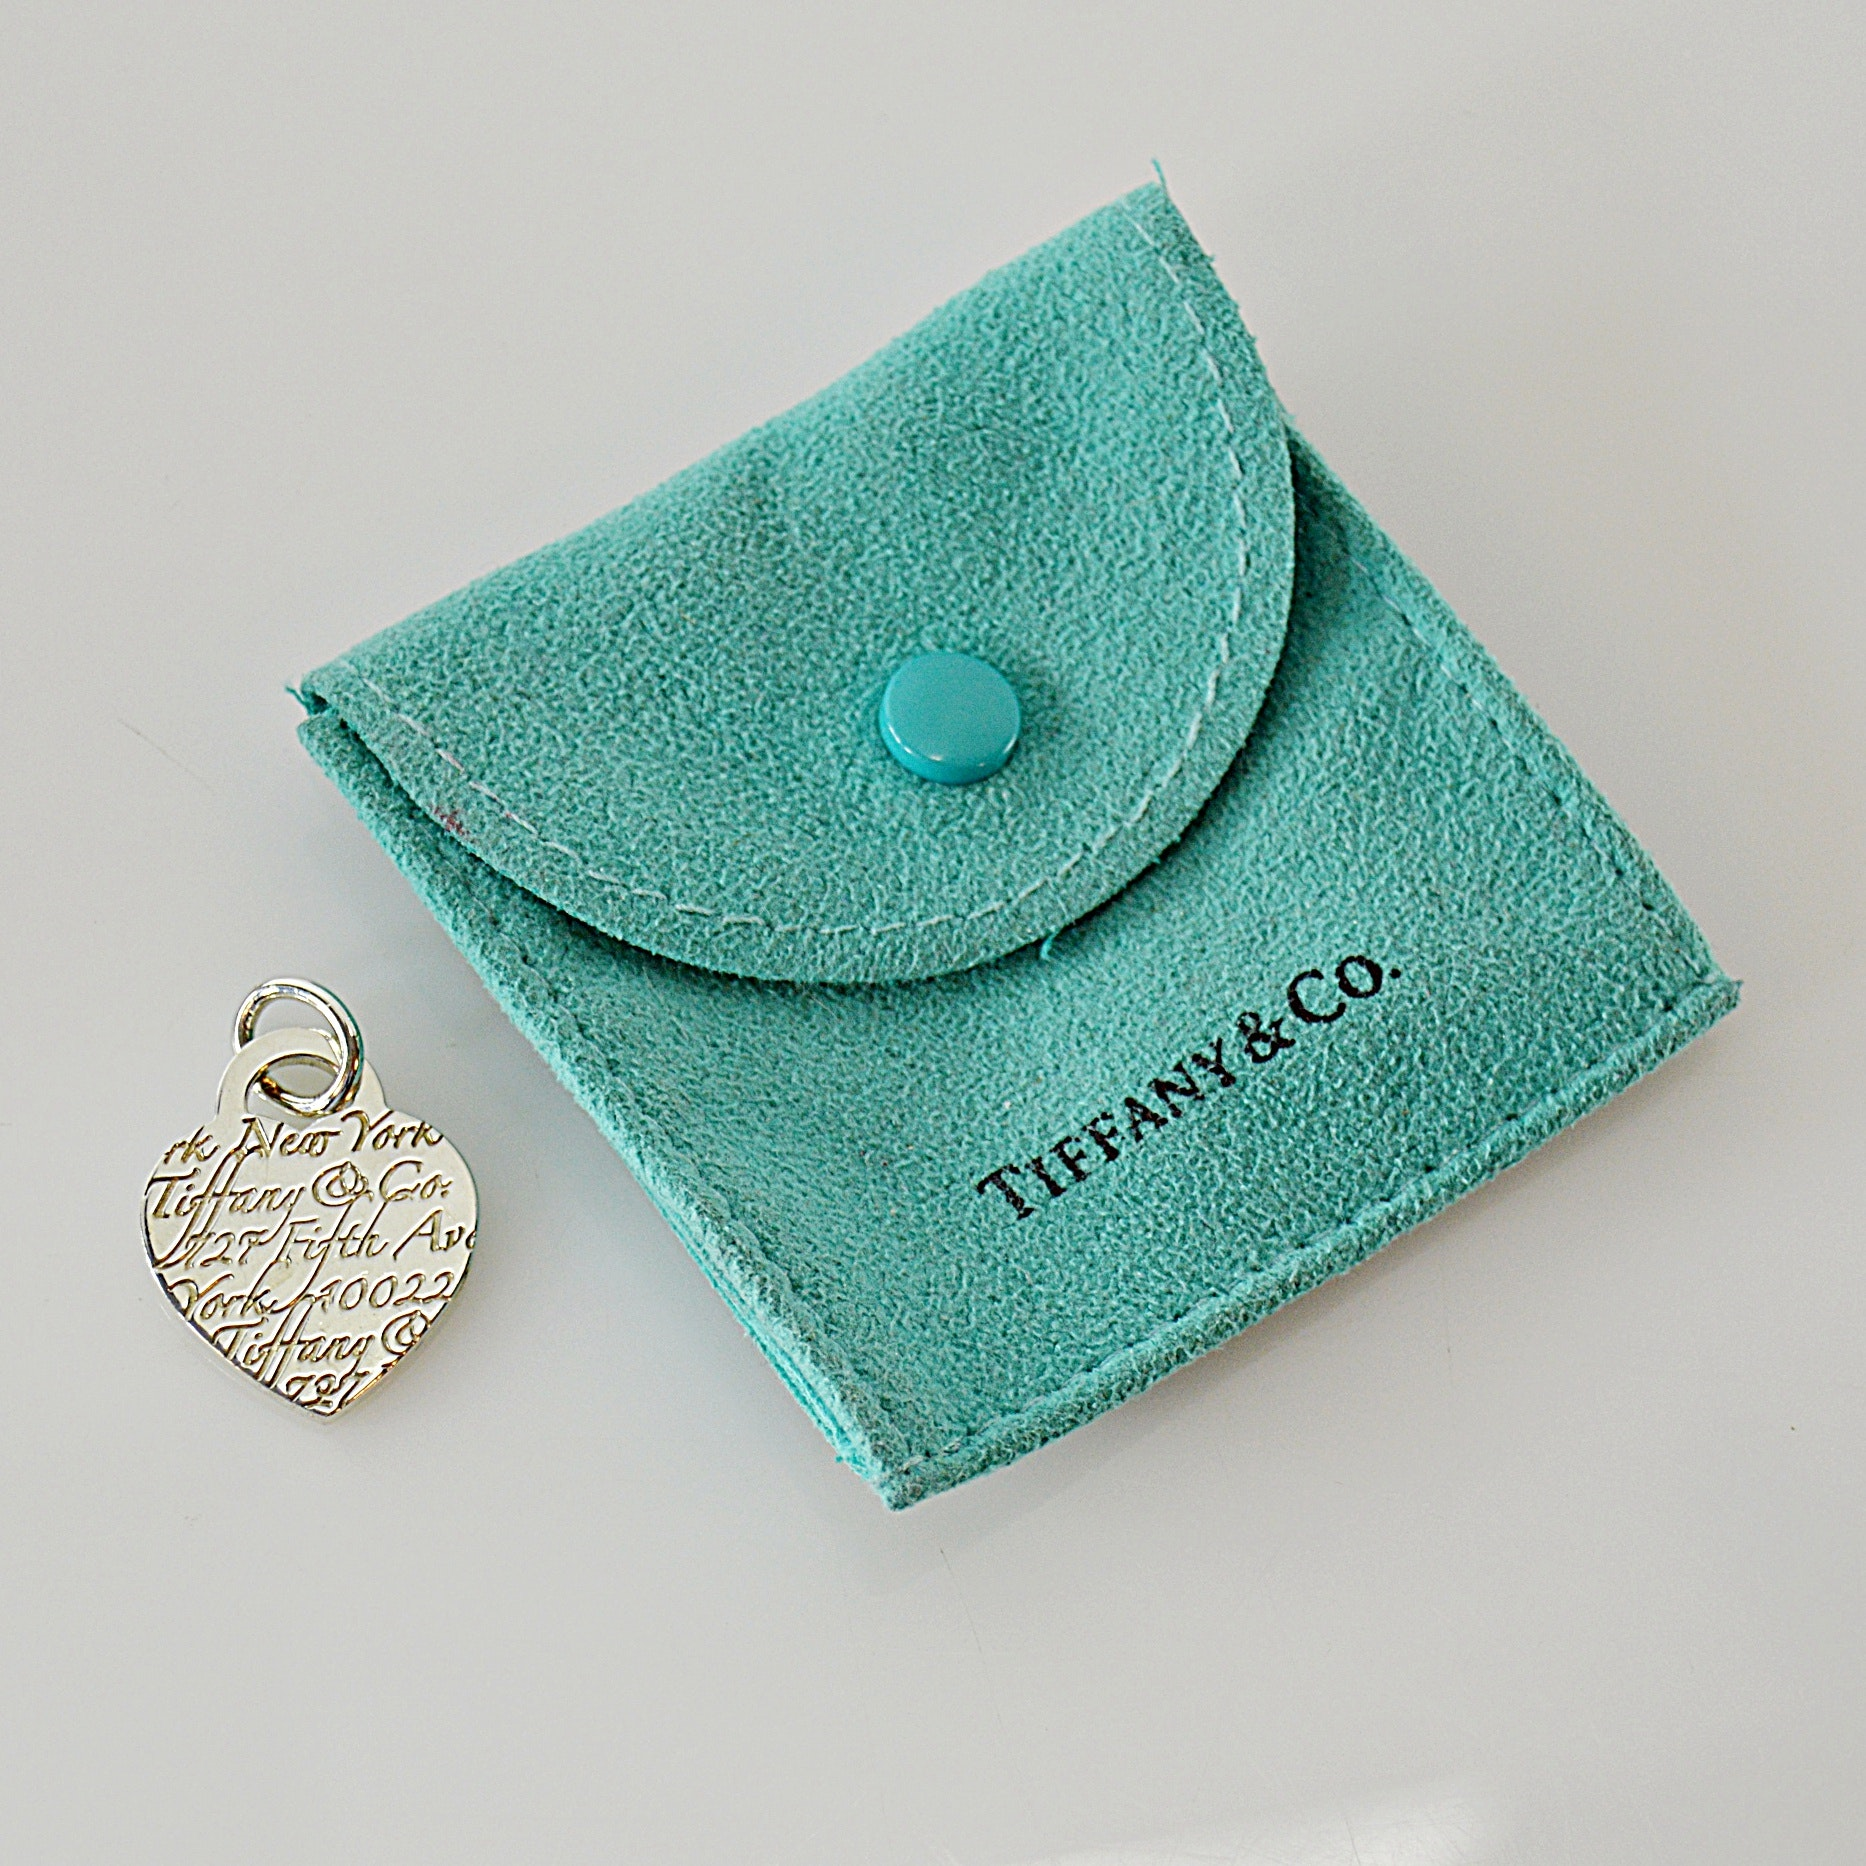 Tiffany & Co. 925 Sterling Silver Heart Pendant with Case